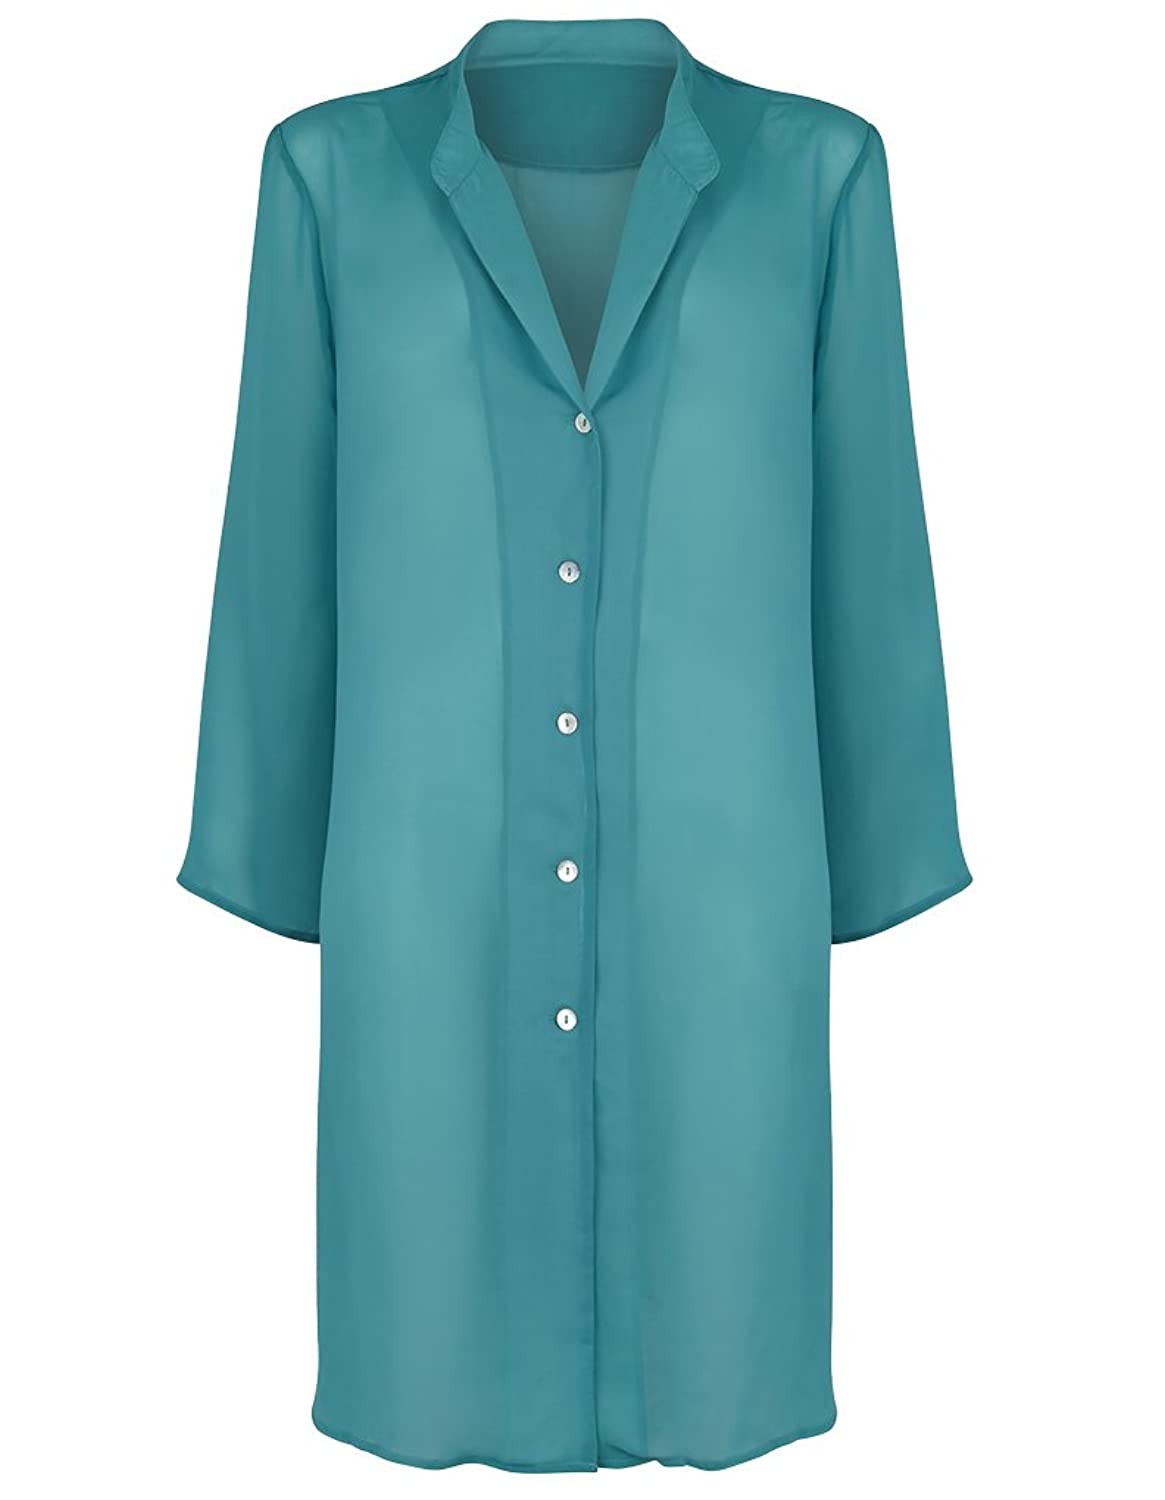 Seaspray Plain Style Strand Shirt in Lagunen Blau 36-3048